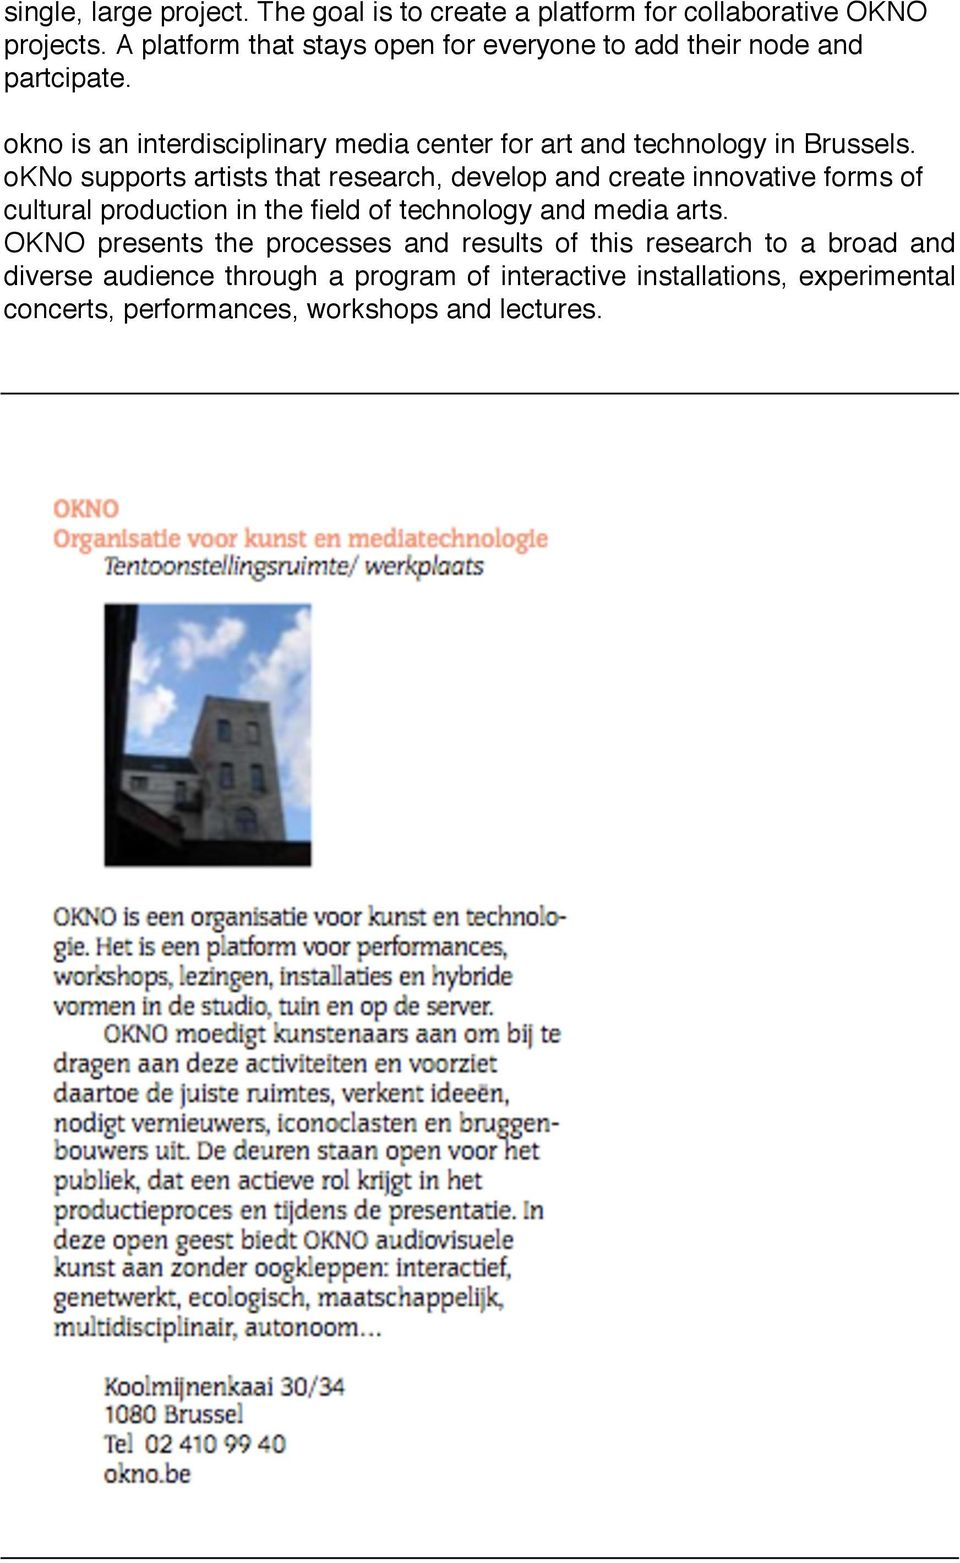 okno is an interdisciplinary media center for art and technology in Brussels.